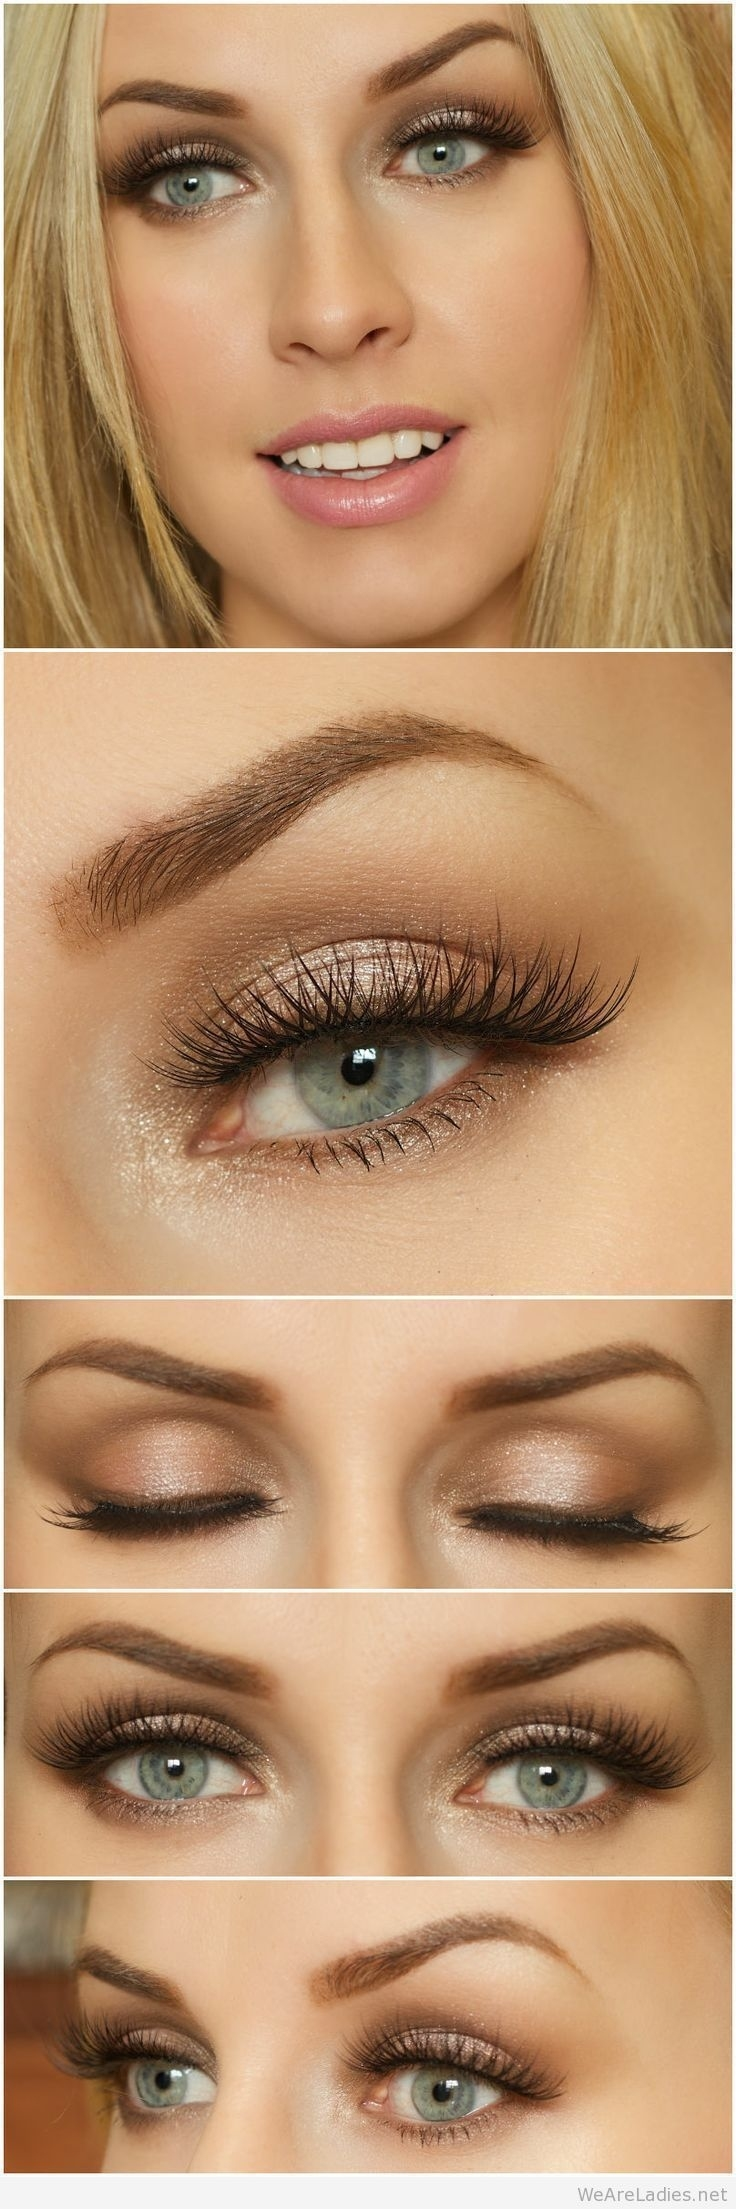 Image Result For Natural Looking Makeup For Fair Skin Green Eyes intended for Makeup For Green Eyes Blonde Hair And Fair Skin